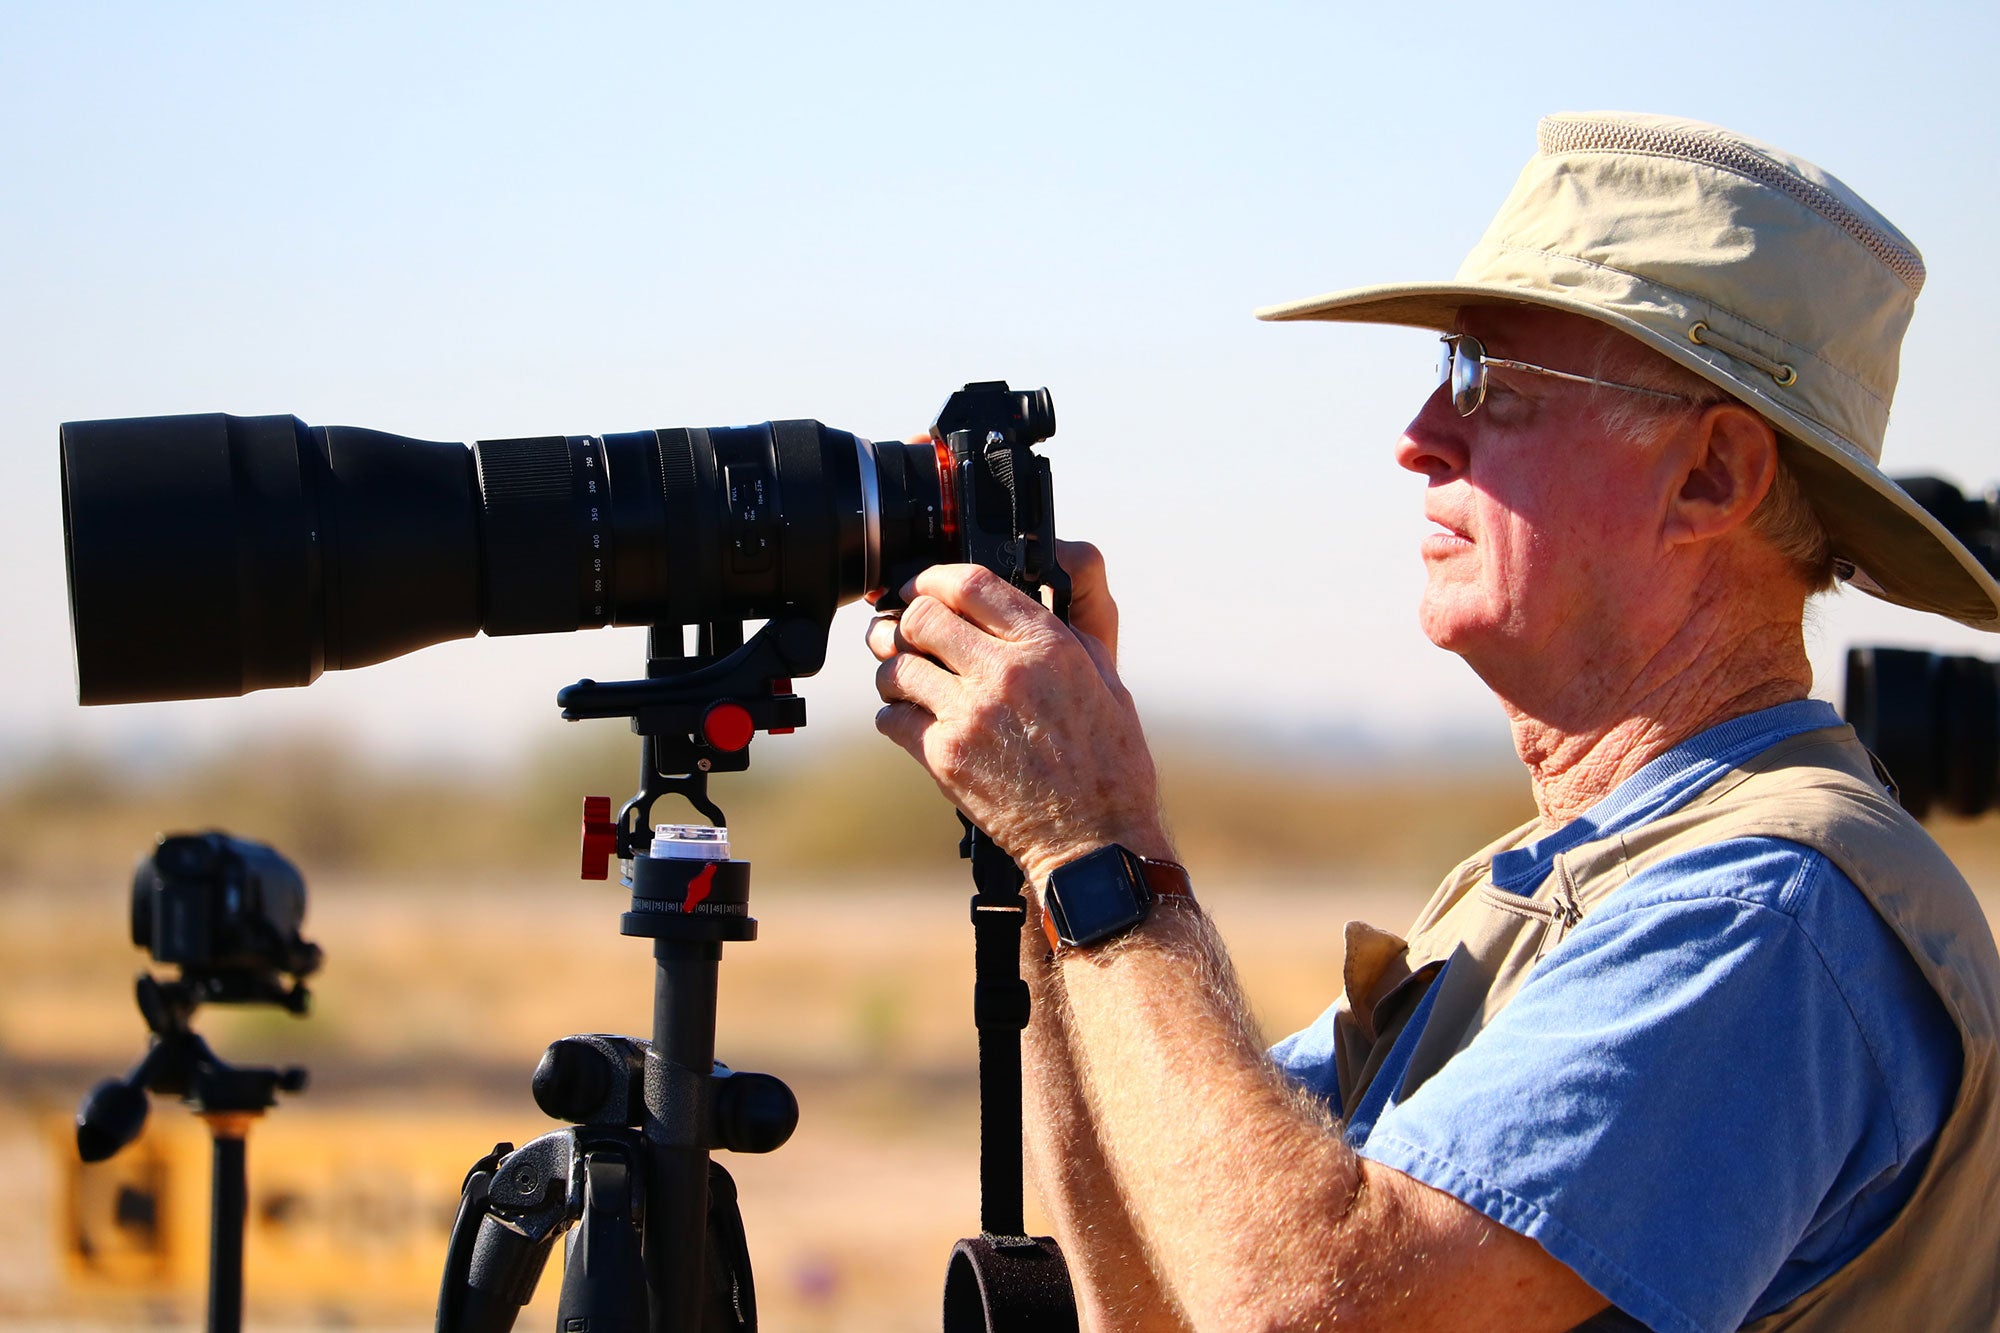 Three Things To Consider When Buying A Tripod